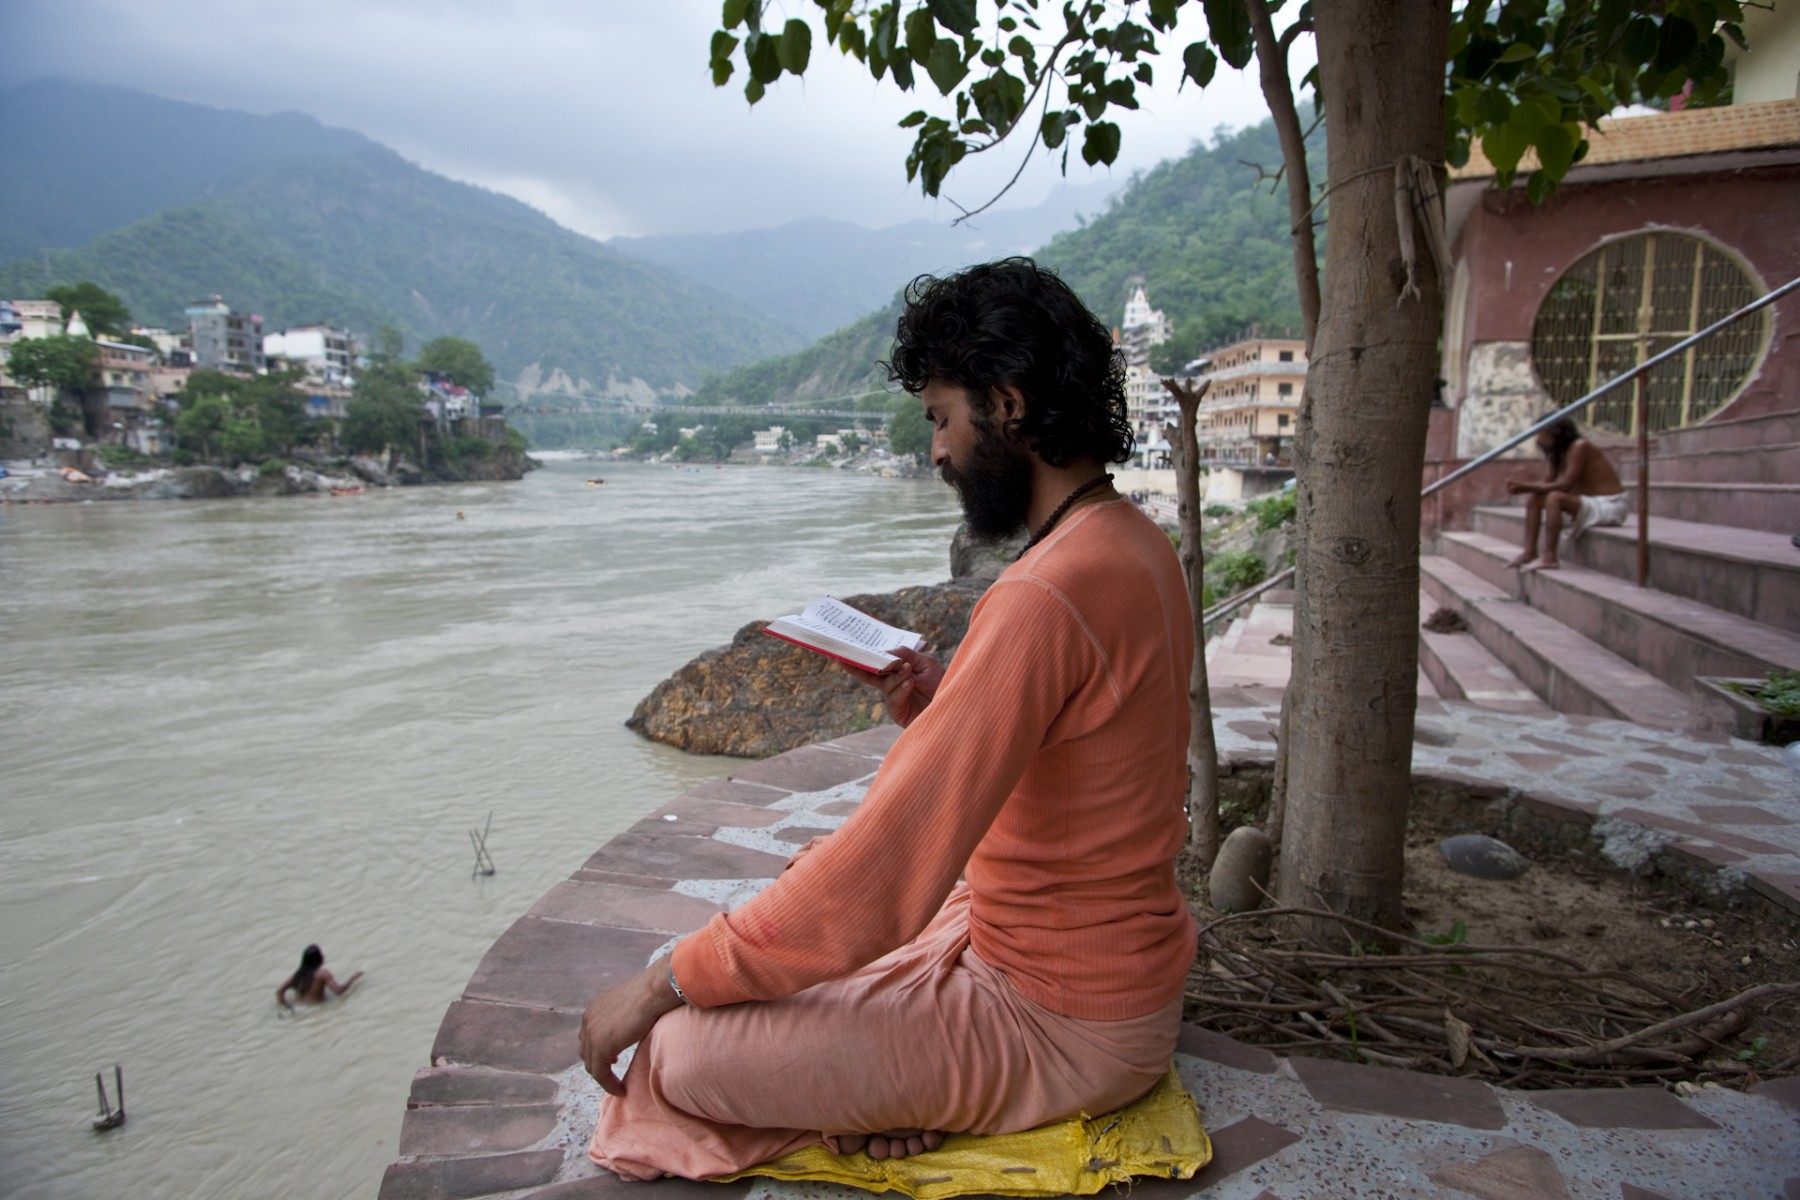 Reading the Gita, Rishikesh